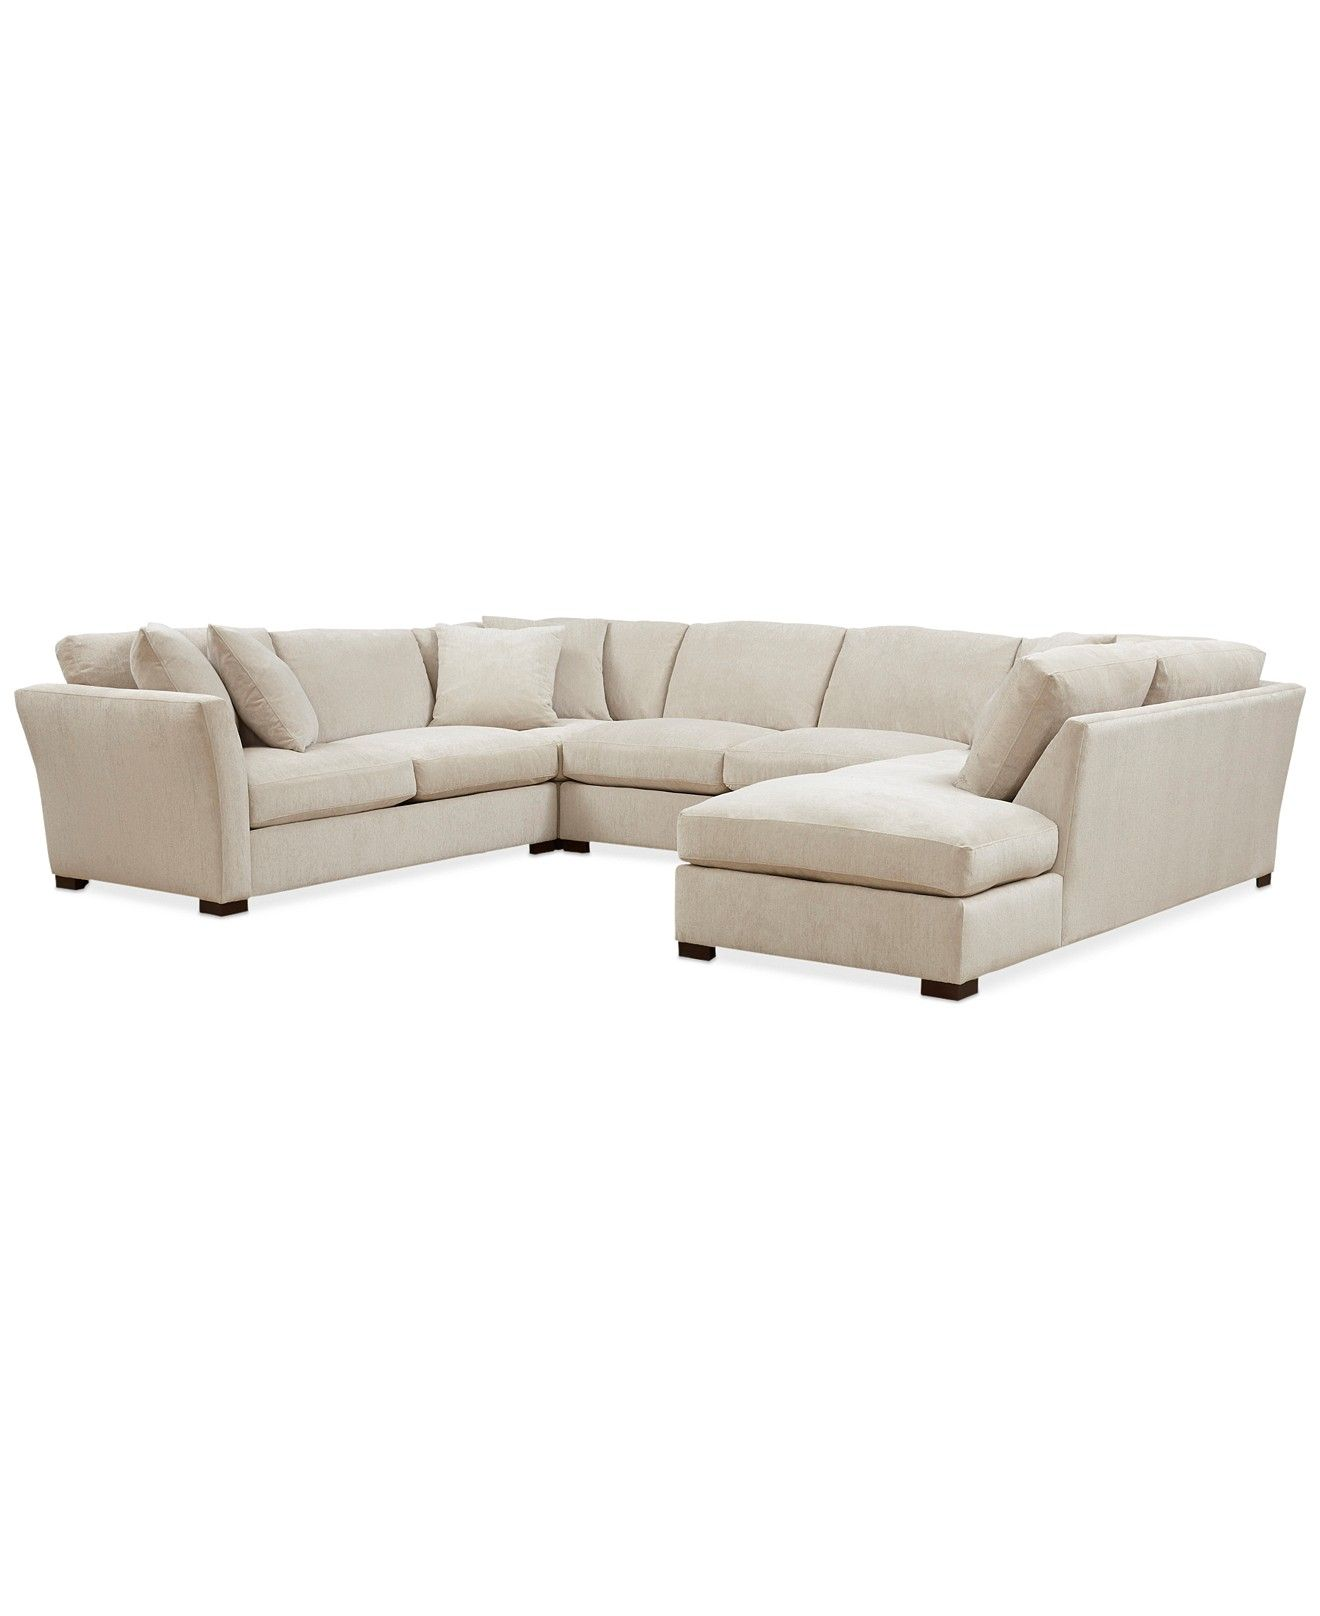 Best Myles Fabric 4 Piece Daybed Sectional Sofa Sectional 400 x 300